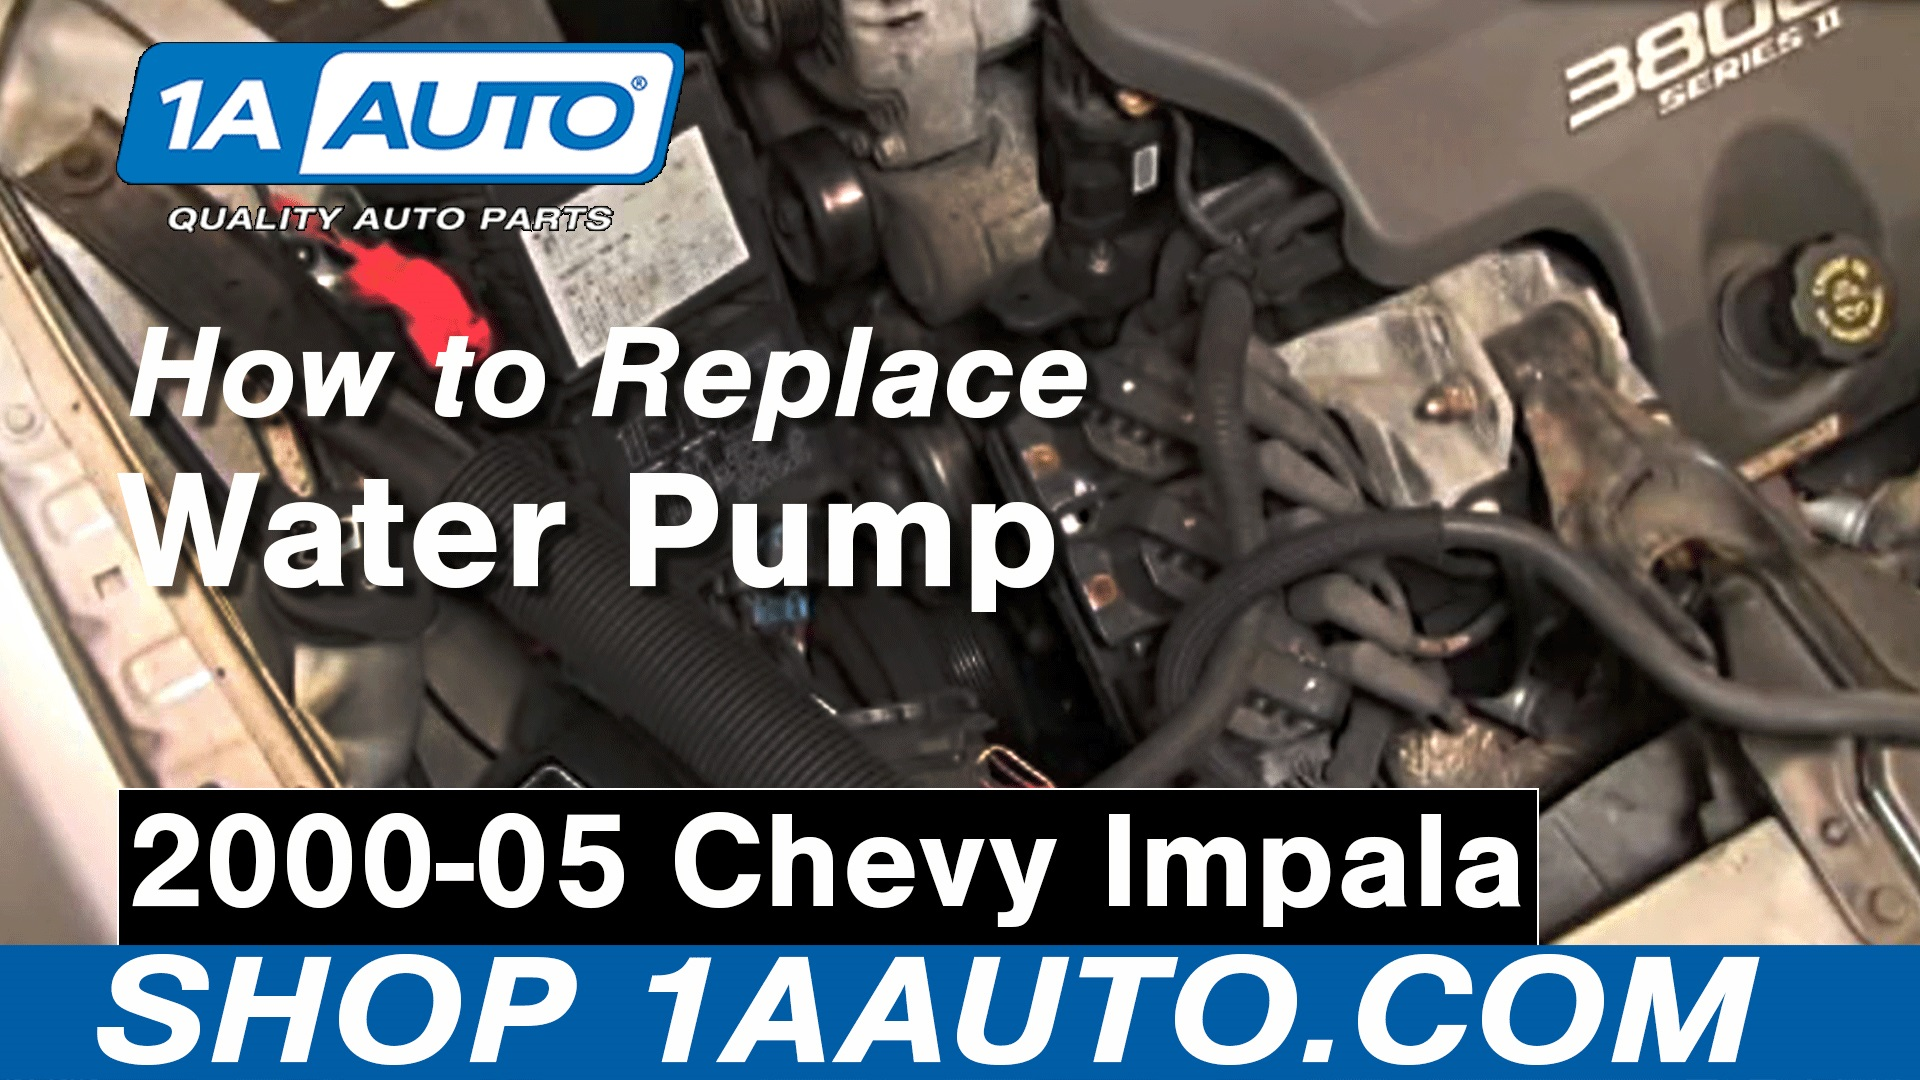 How to Replace Engine Water Pump 00-05 Chevy Impala